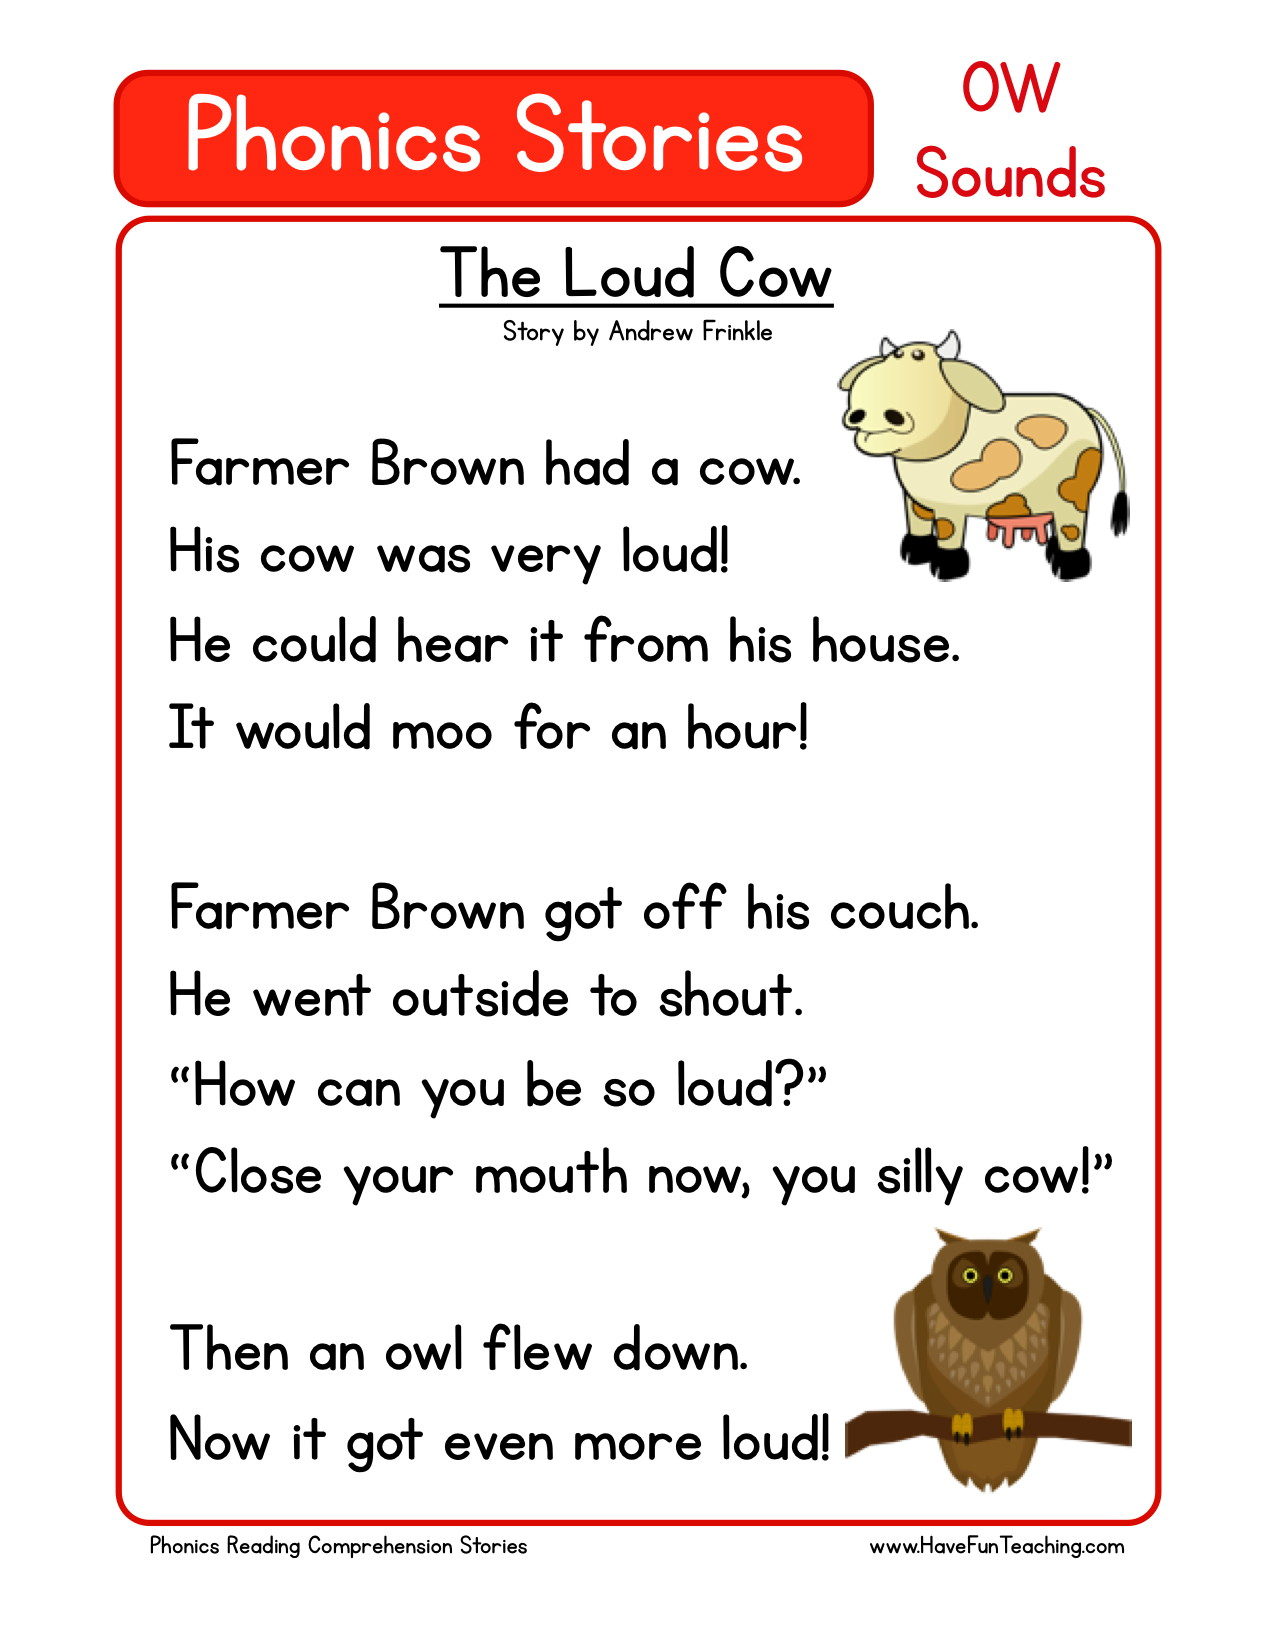 The Loud Cow